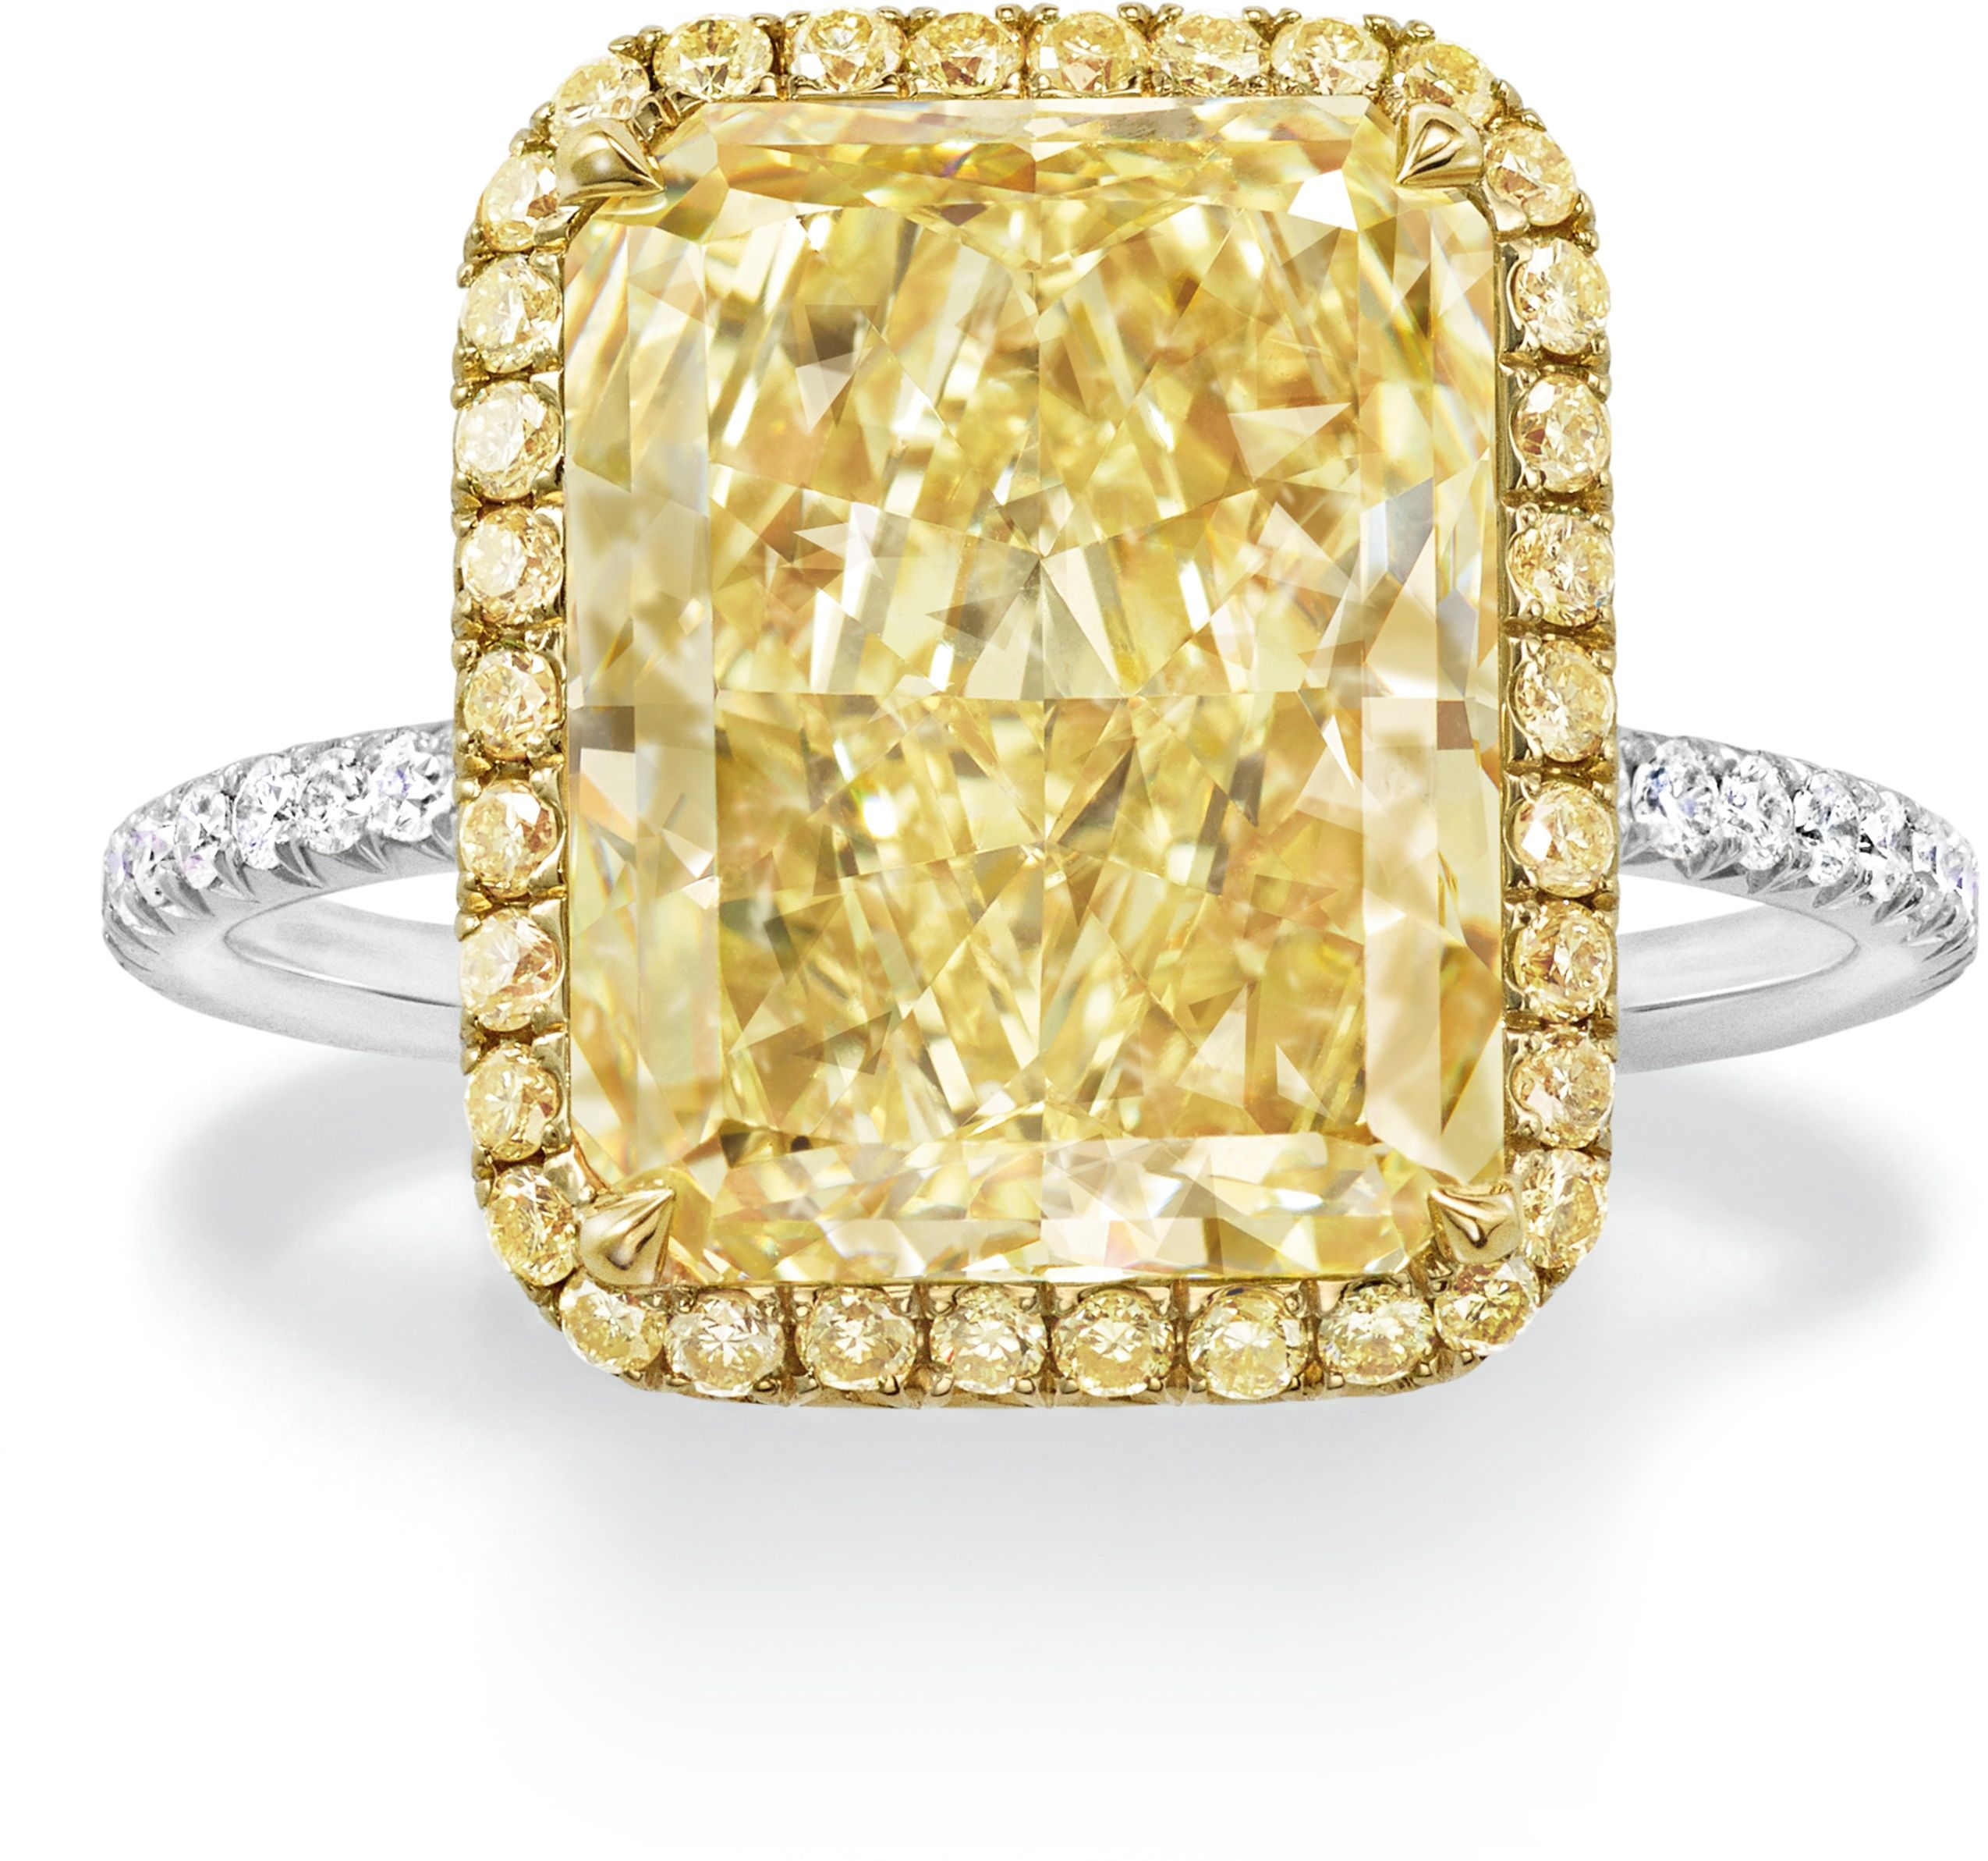 20 Totally Over The Top Engagement Rings Luxury Engagement Rings Most Expensive Engagement Ring Top Engagement Rings